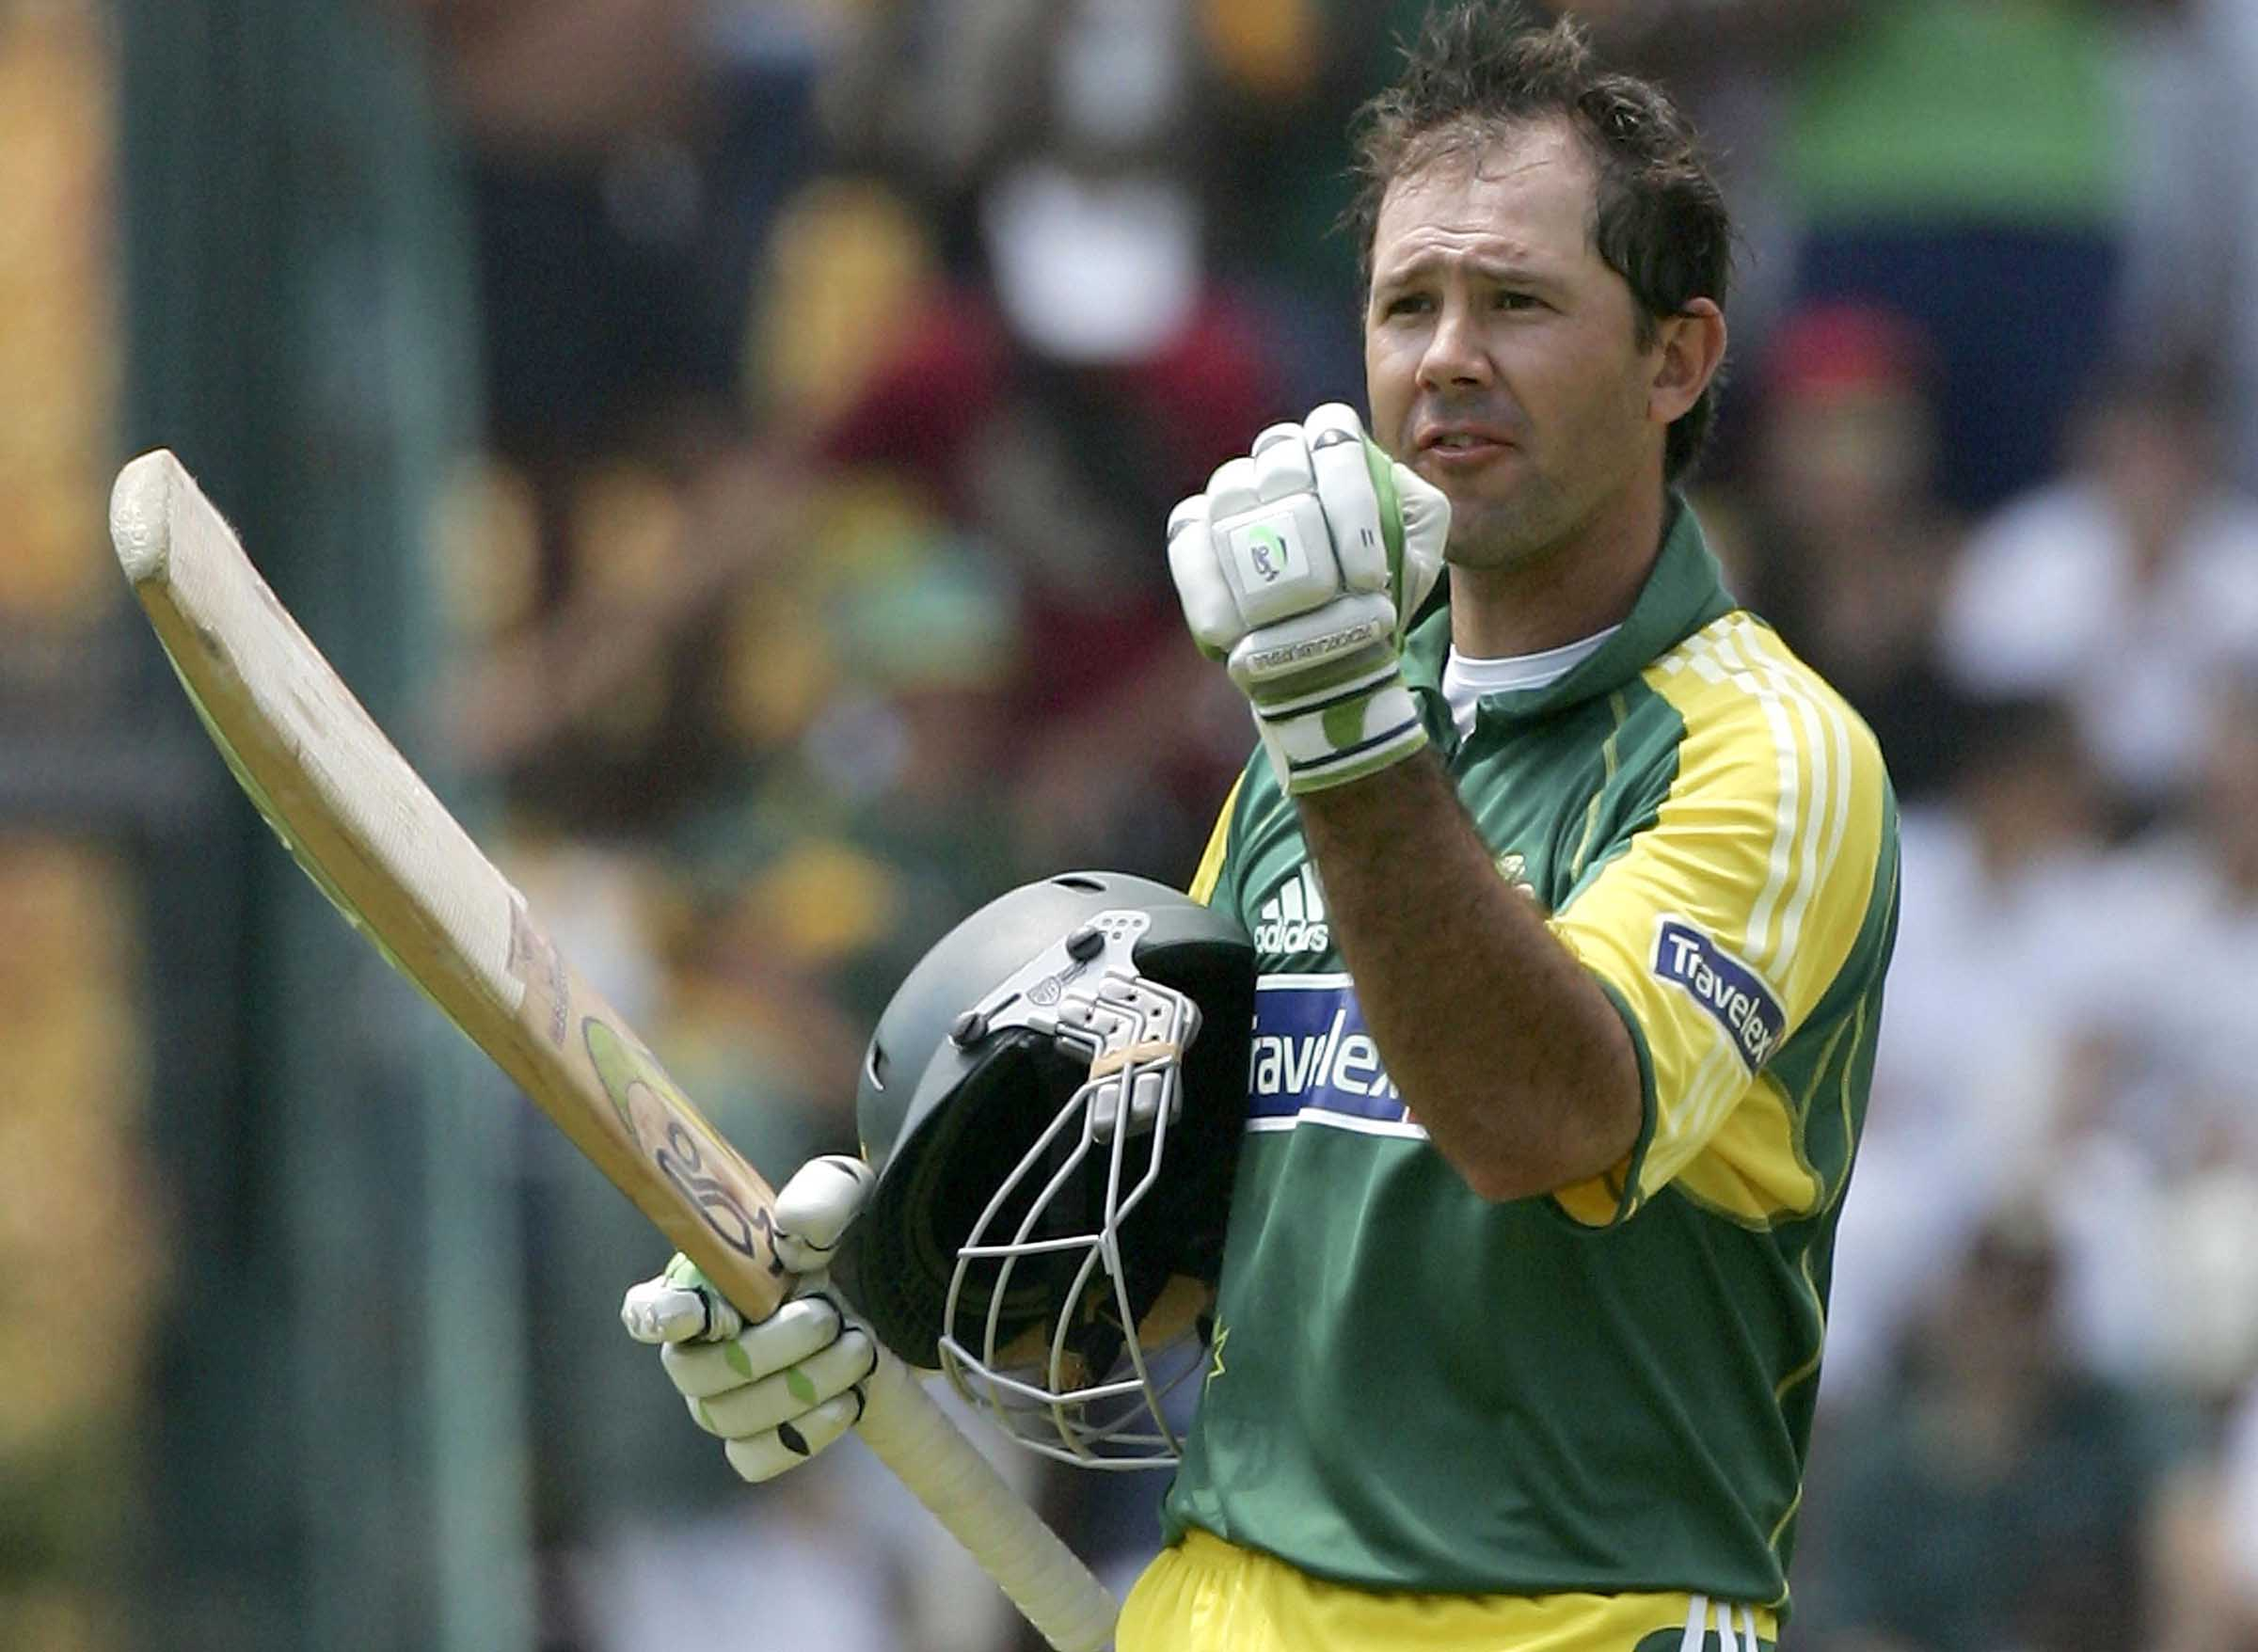 Ponting pumps his fist after reaching a spectacular hundred // Getty